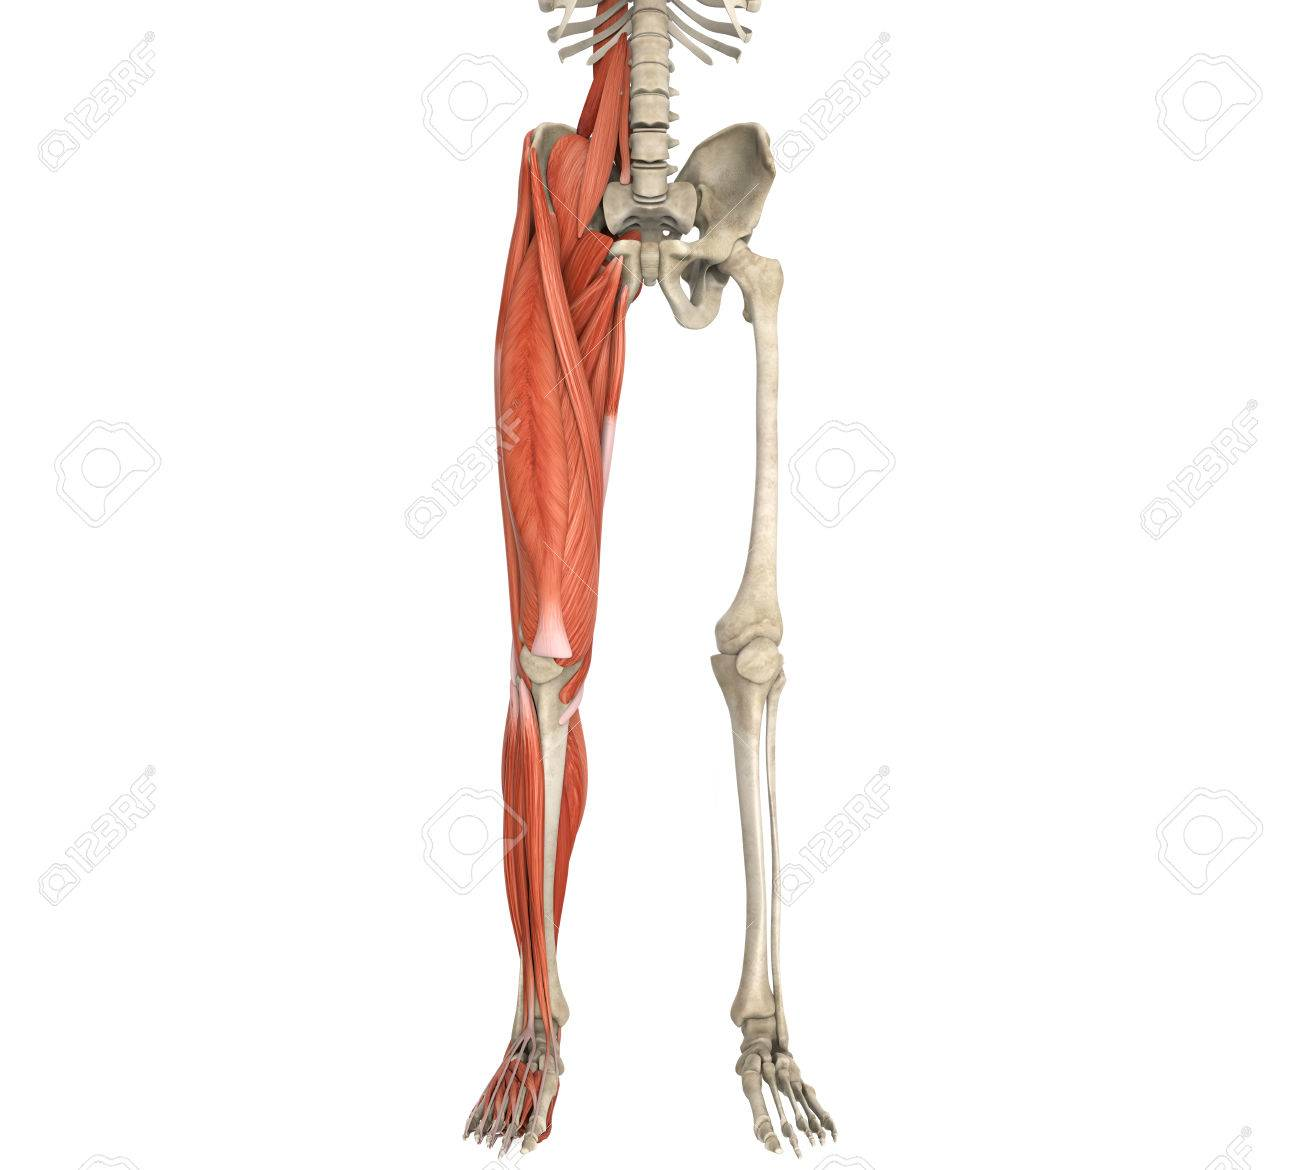 Legs Muscles Anatomy Stock Photo Picture And Royalty Free Image